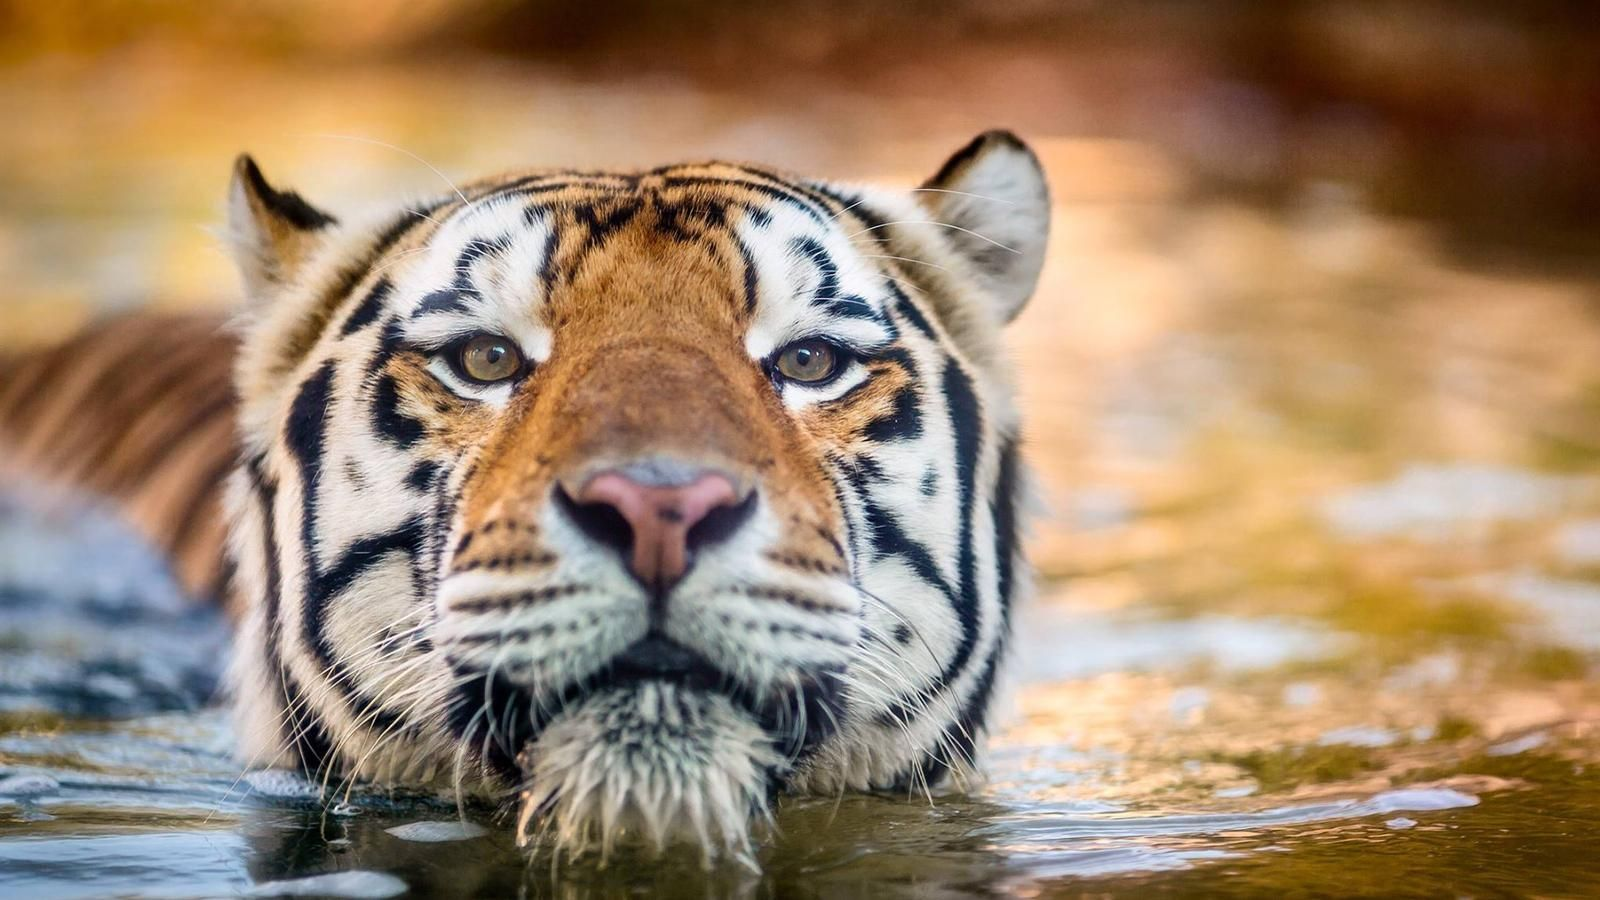 Remembering Mike the Tiger